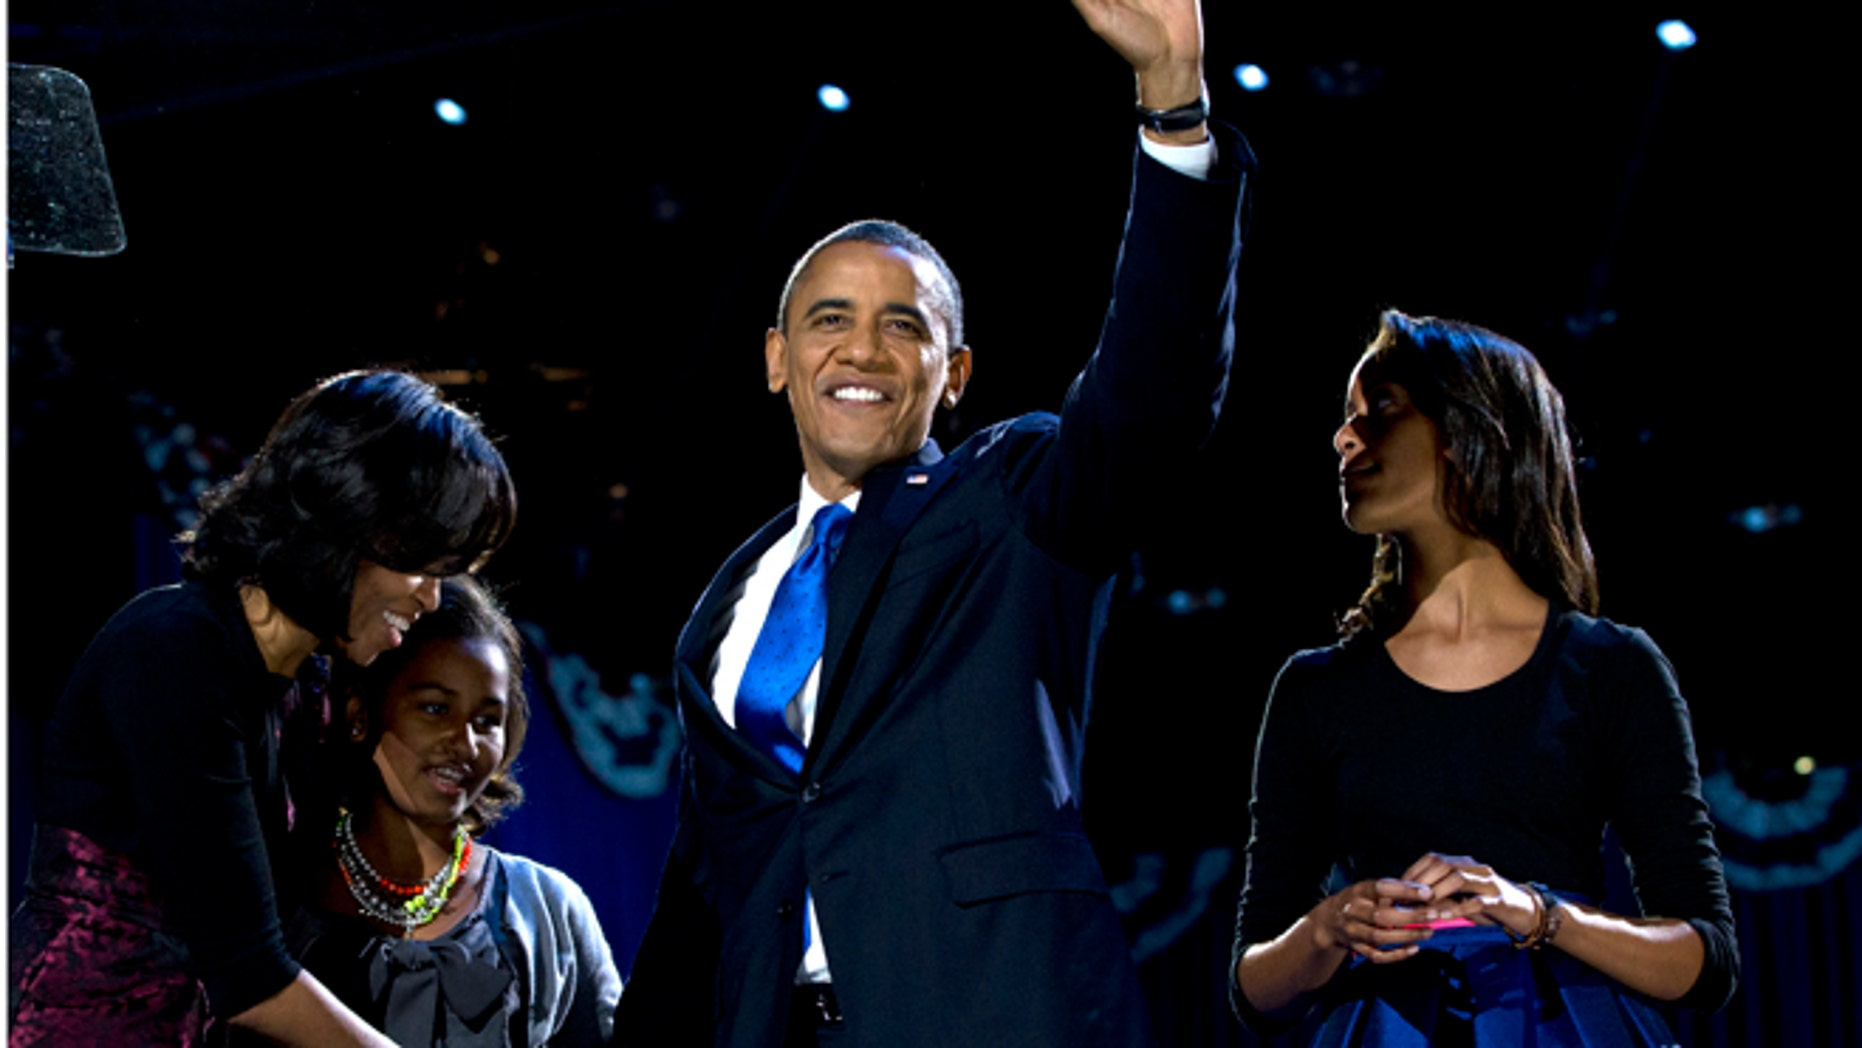 Nov. 7, 2012: President Barack Obama, accompanied by first lady Michelle Obama and daughters Malia and Sasha arrive at the election night party in Chicago.